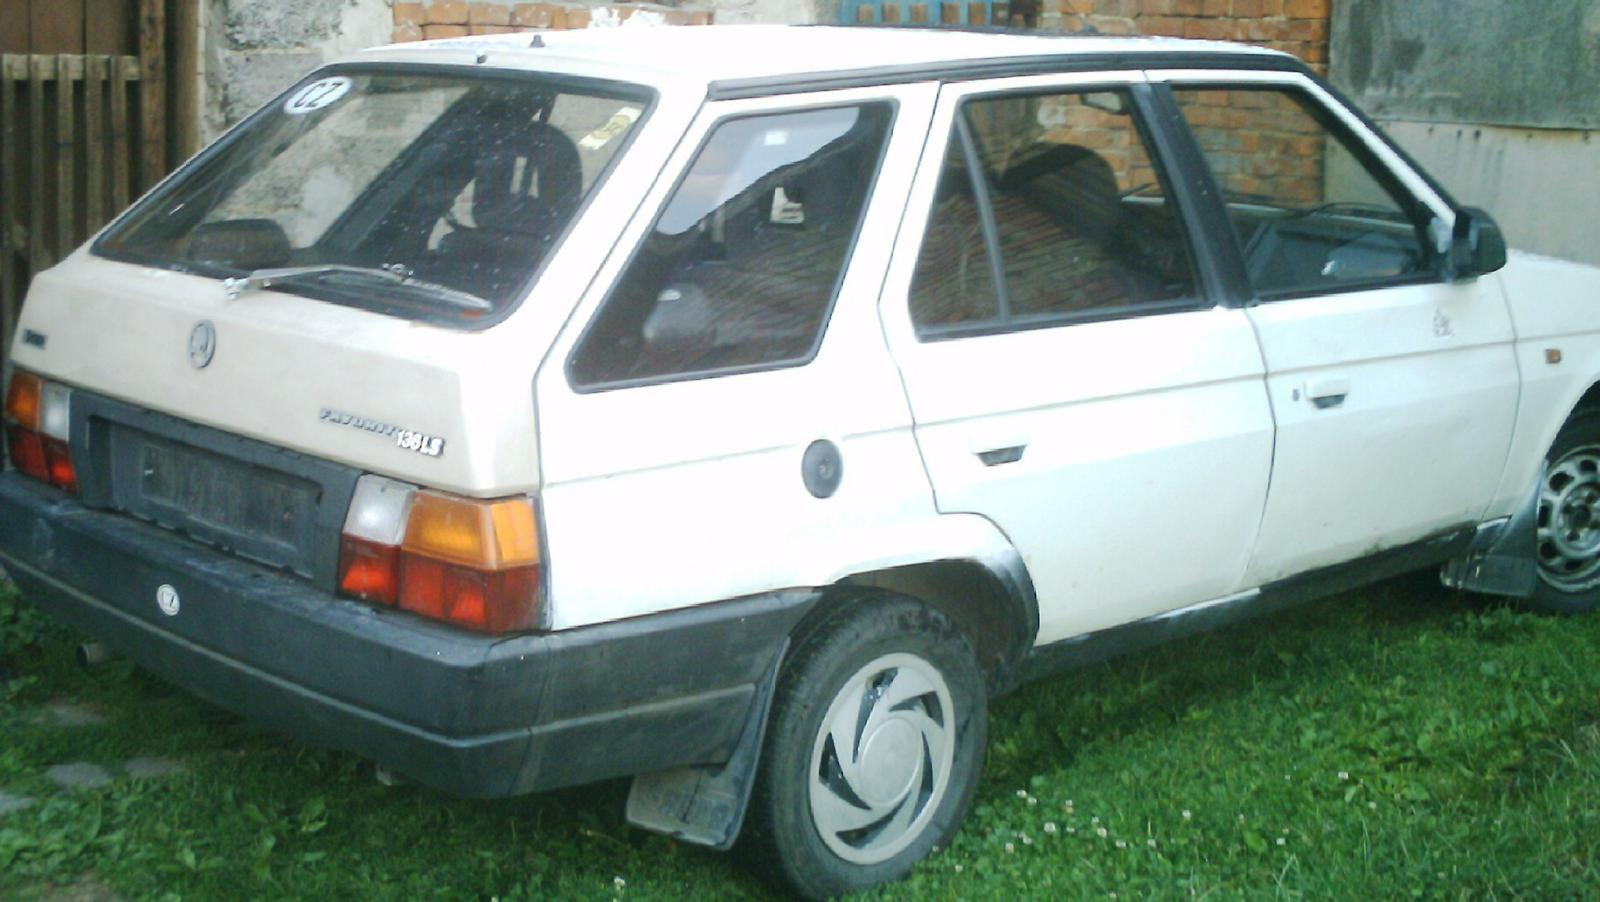 skoda favorit forman (785) 1993